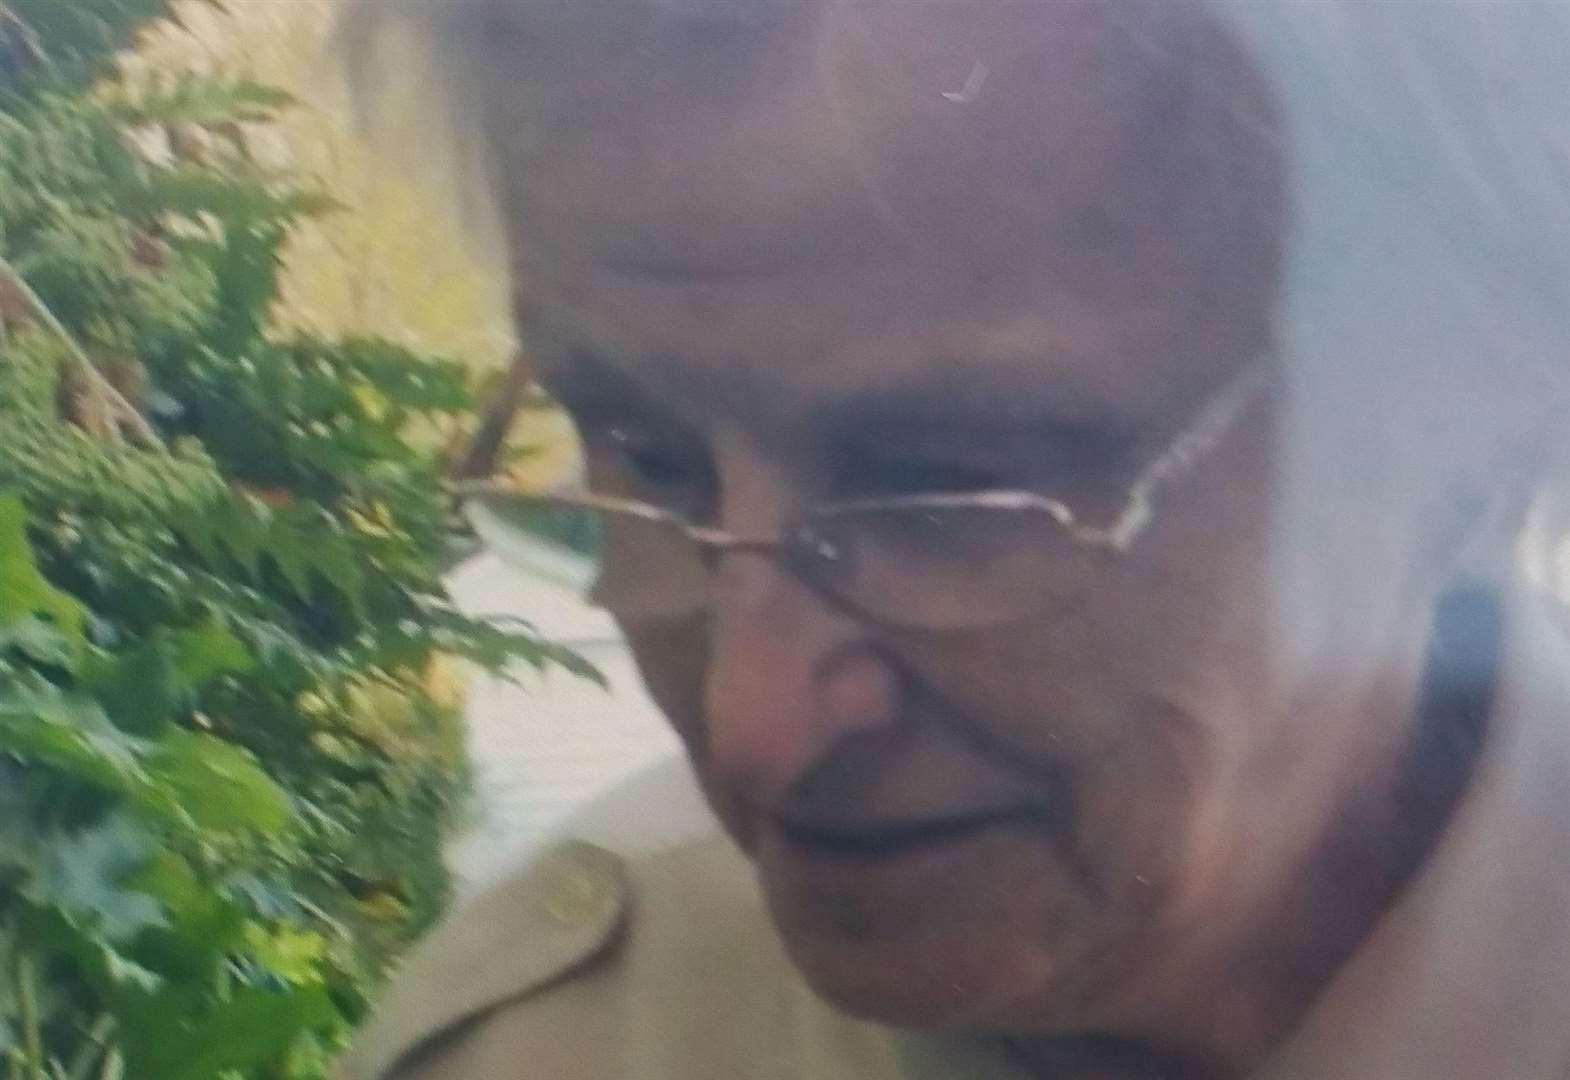 Missing pensioner found safe and well